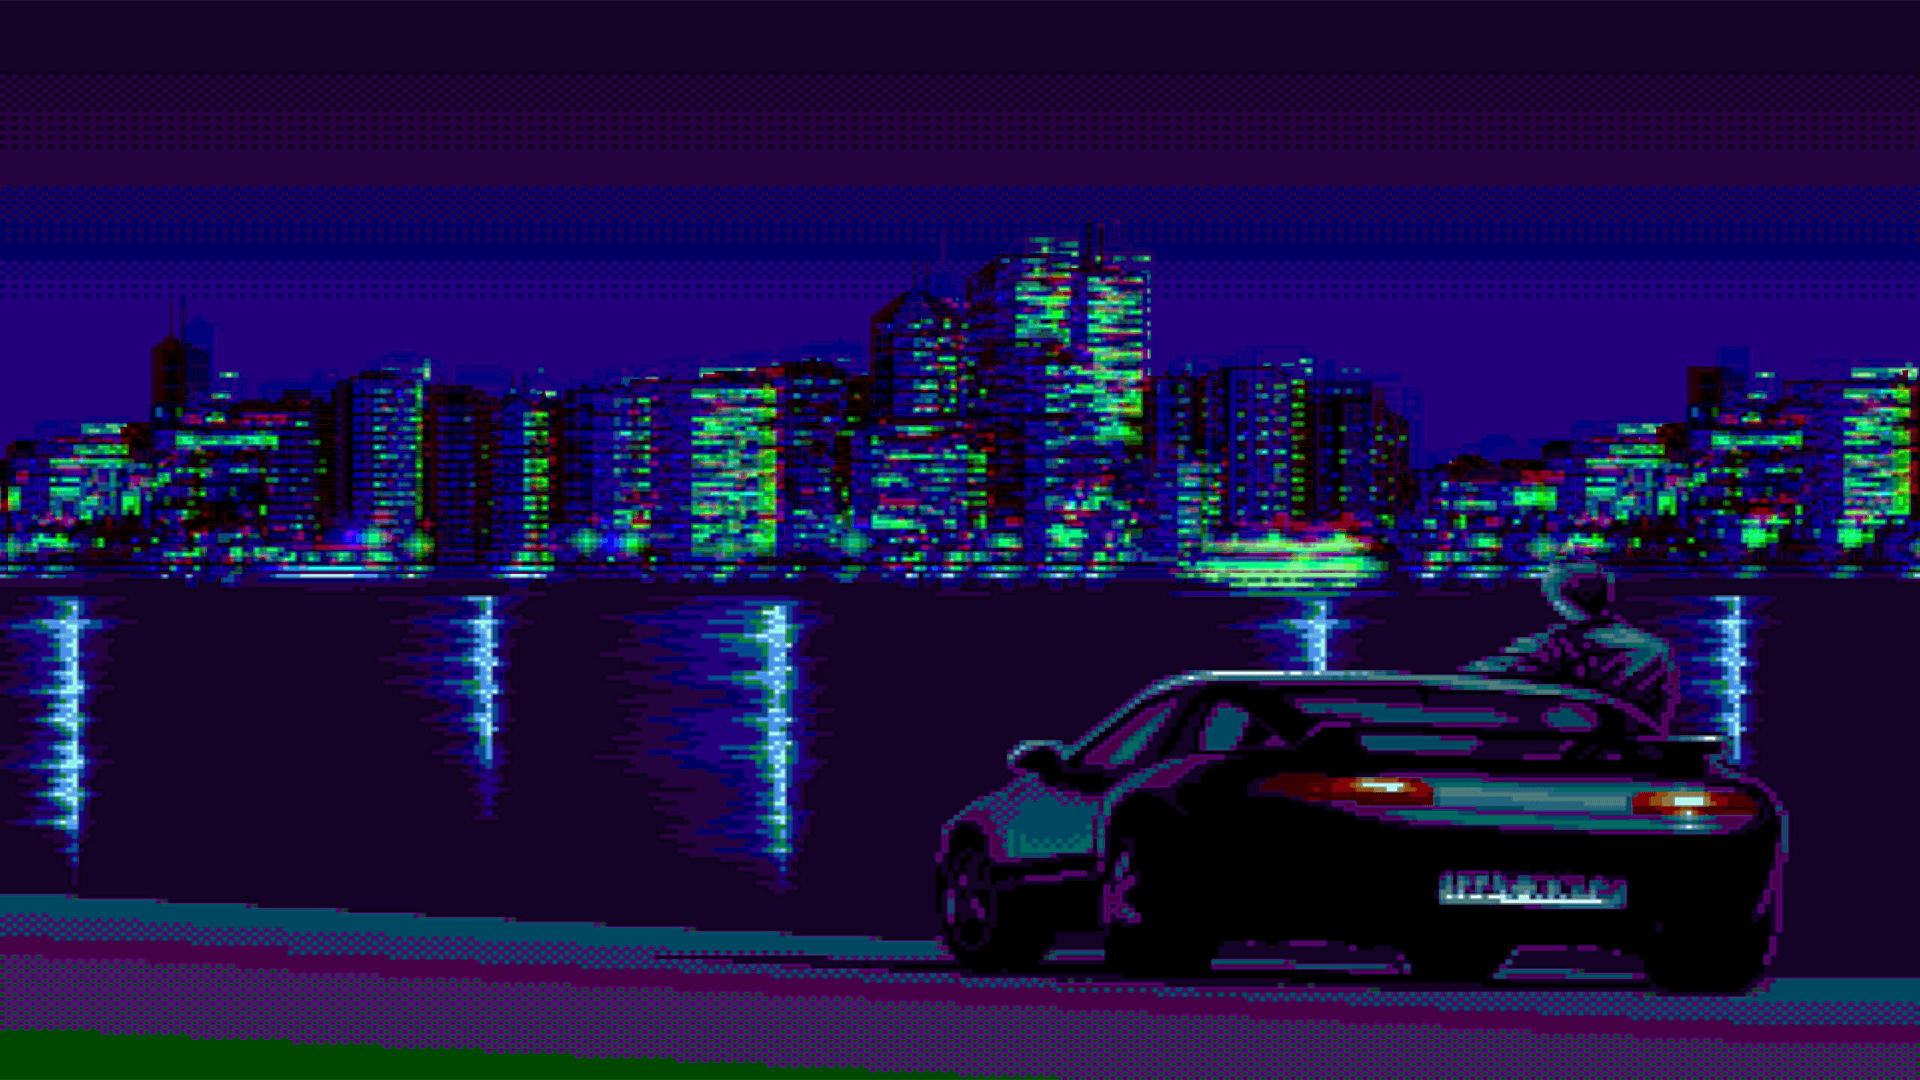 Aesthetic Wallpapers   Top Aesthetic Backgrounds 1920x1080